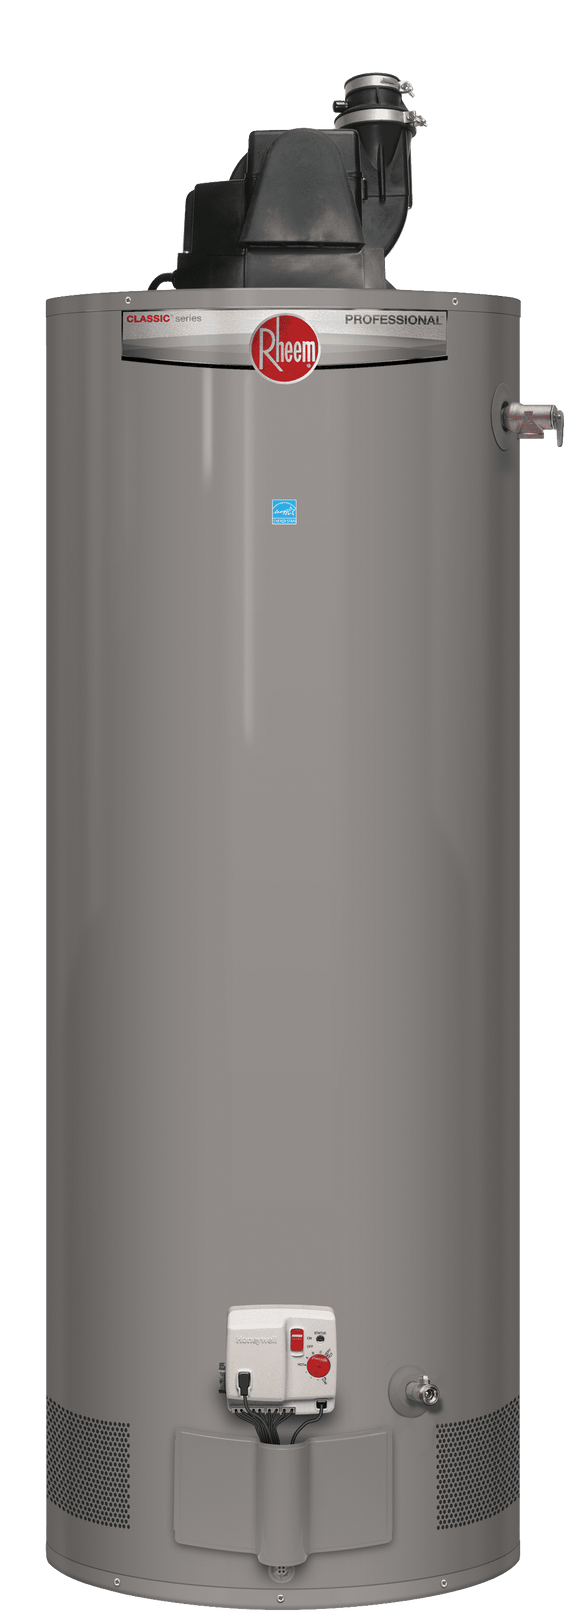 RHEEM PRO+G75-76N RH PV Professional Classic Plus 75 Gallon Tall Residential 8 Year 75,100 BTU Natural Gas Heavy Duty Power Vent Water Heater